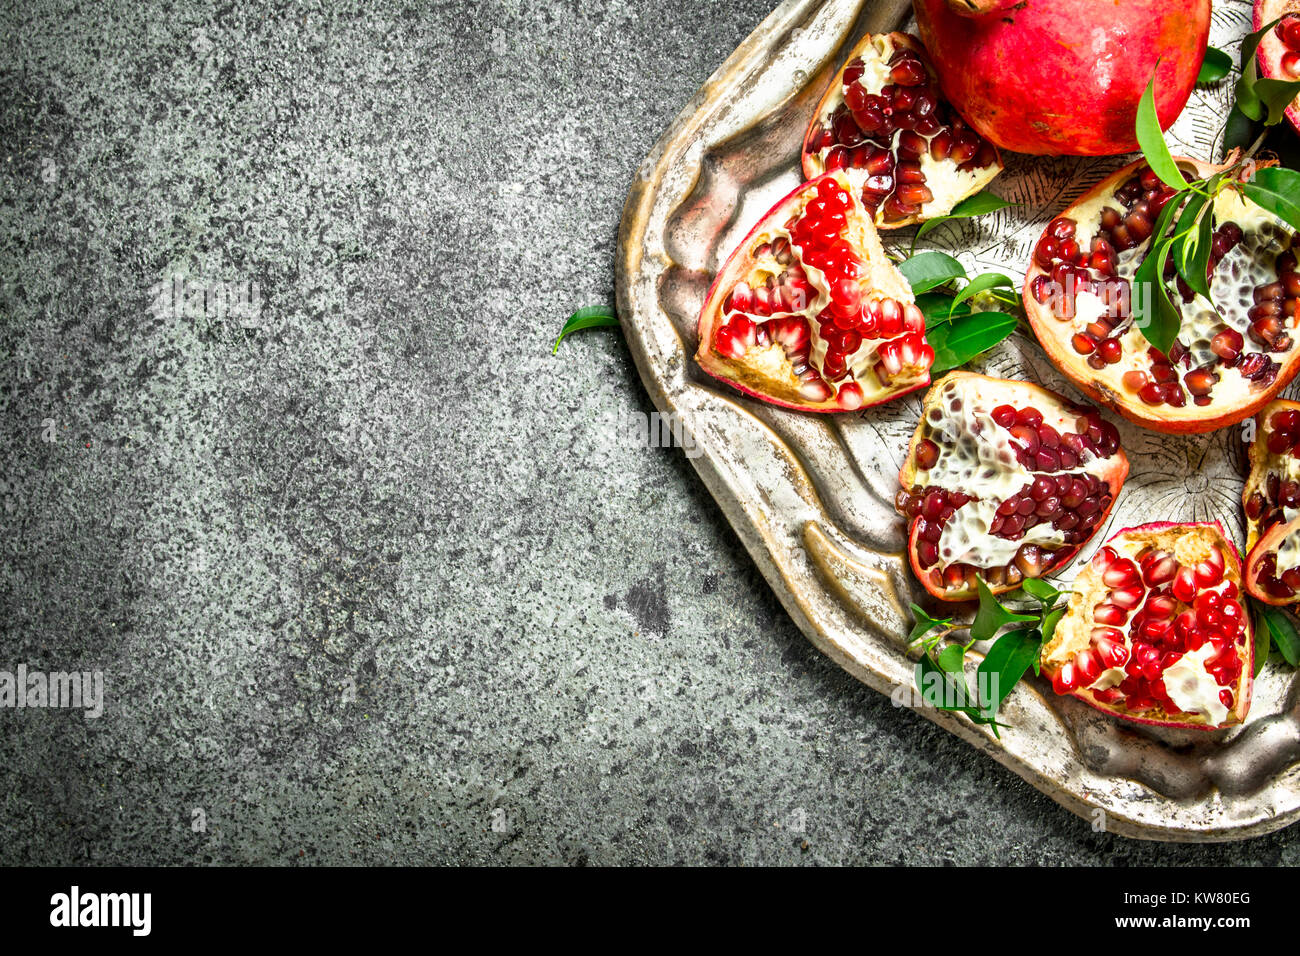 Ripe pomegranates on a steel tray. On a rustic background. - Stock Image